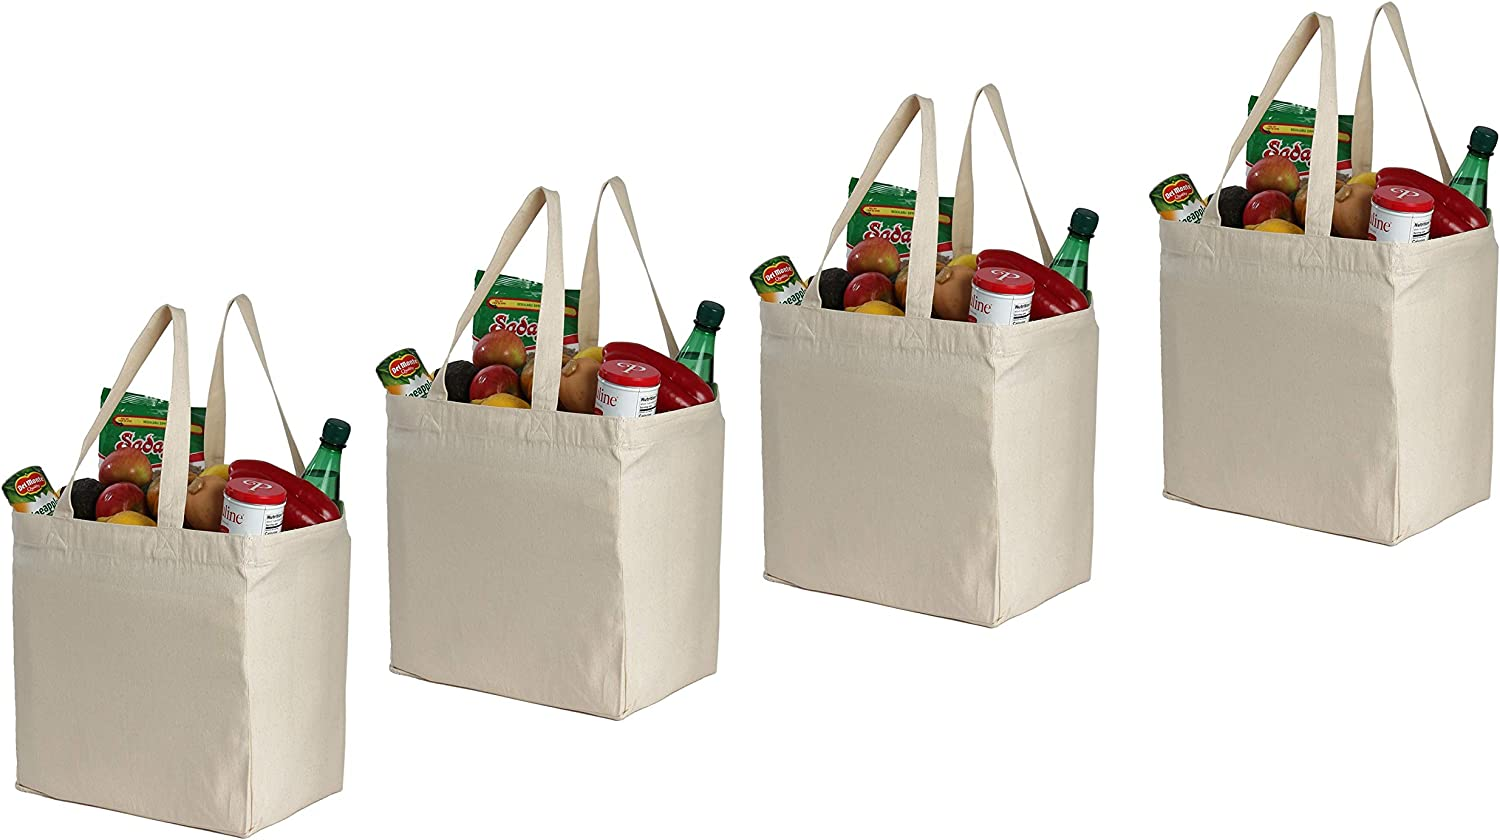 Earthwise Cotton Canvas Reusable Shopping Grocery Bag Tote Biodegradable (4 Pack) (Natural)